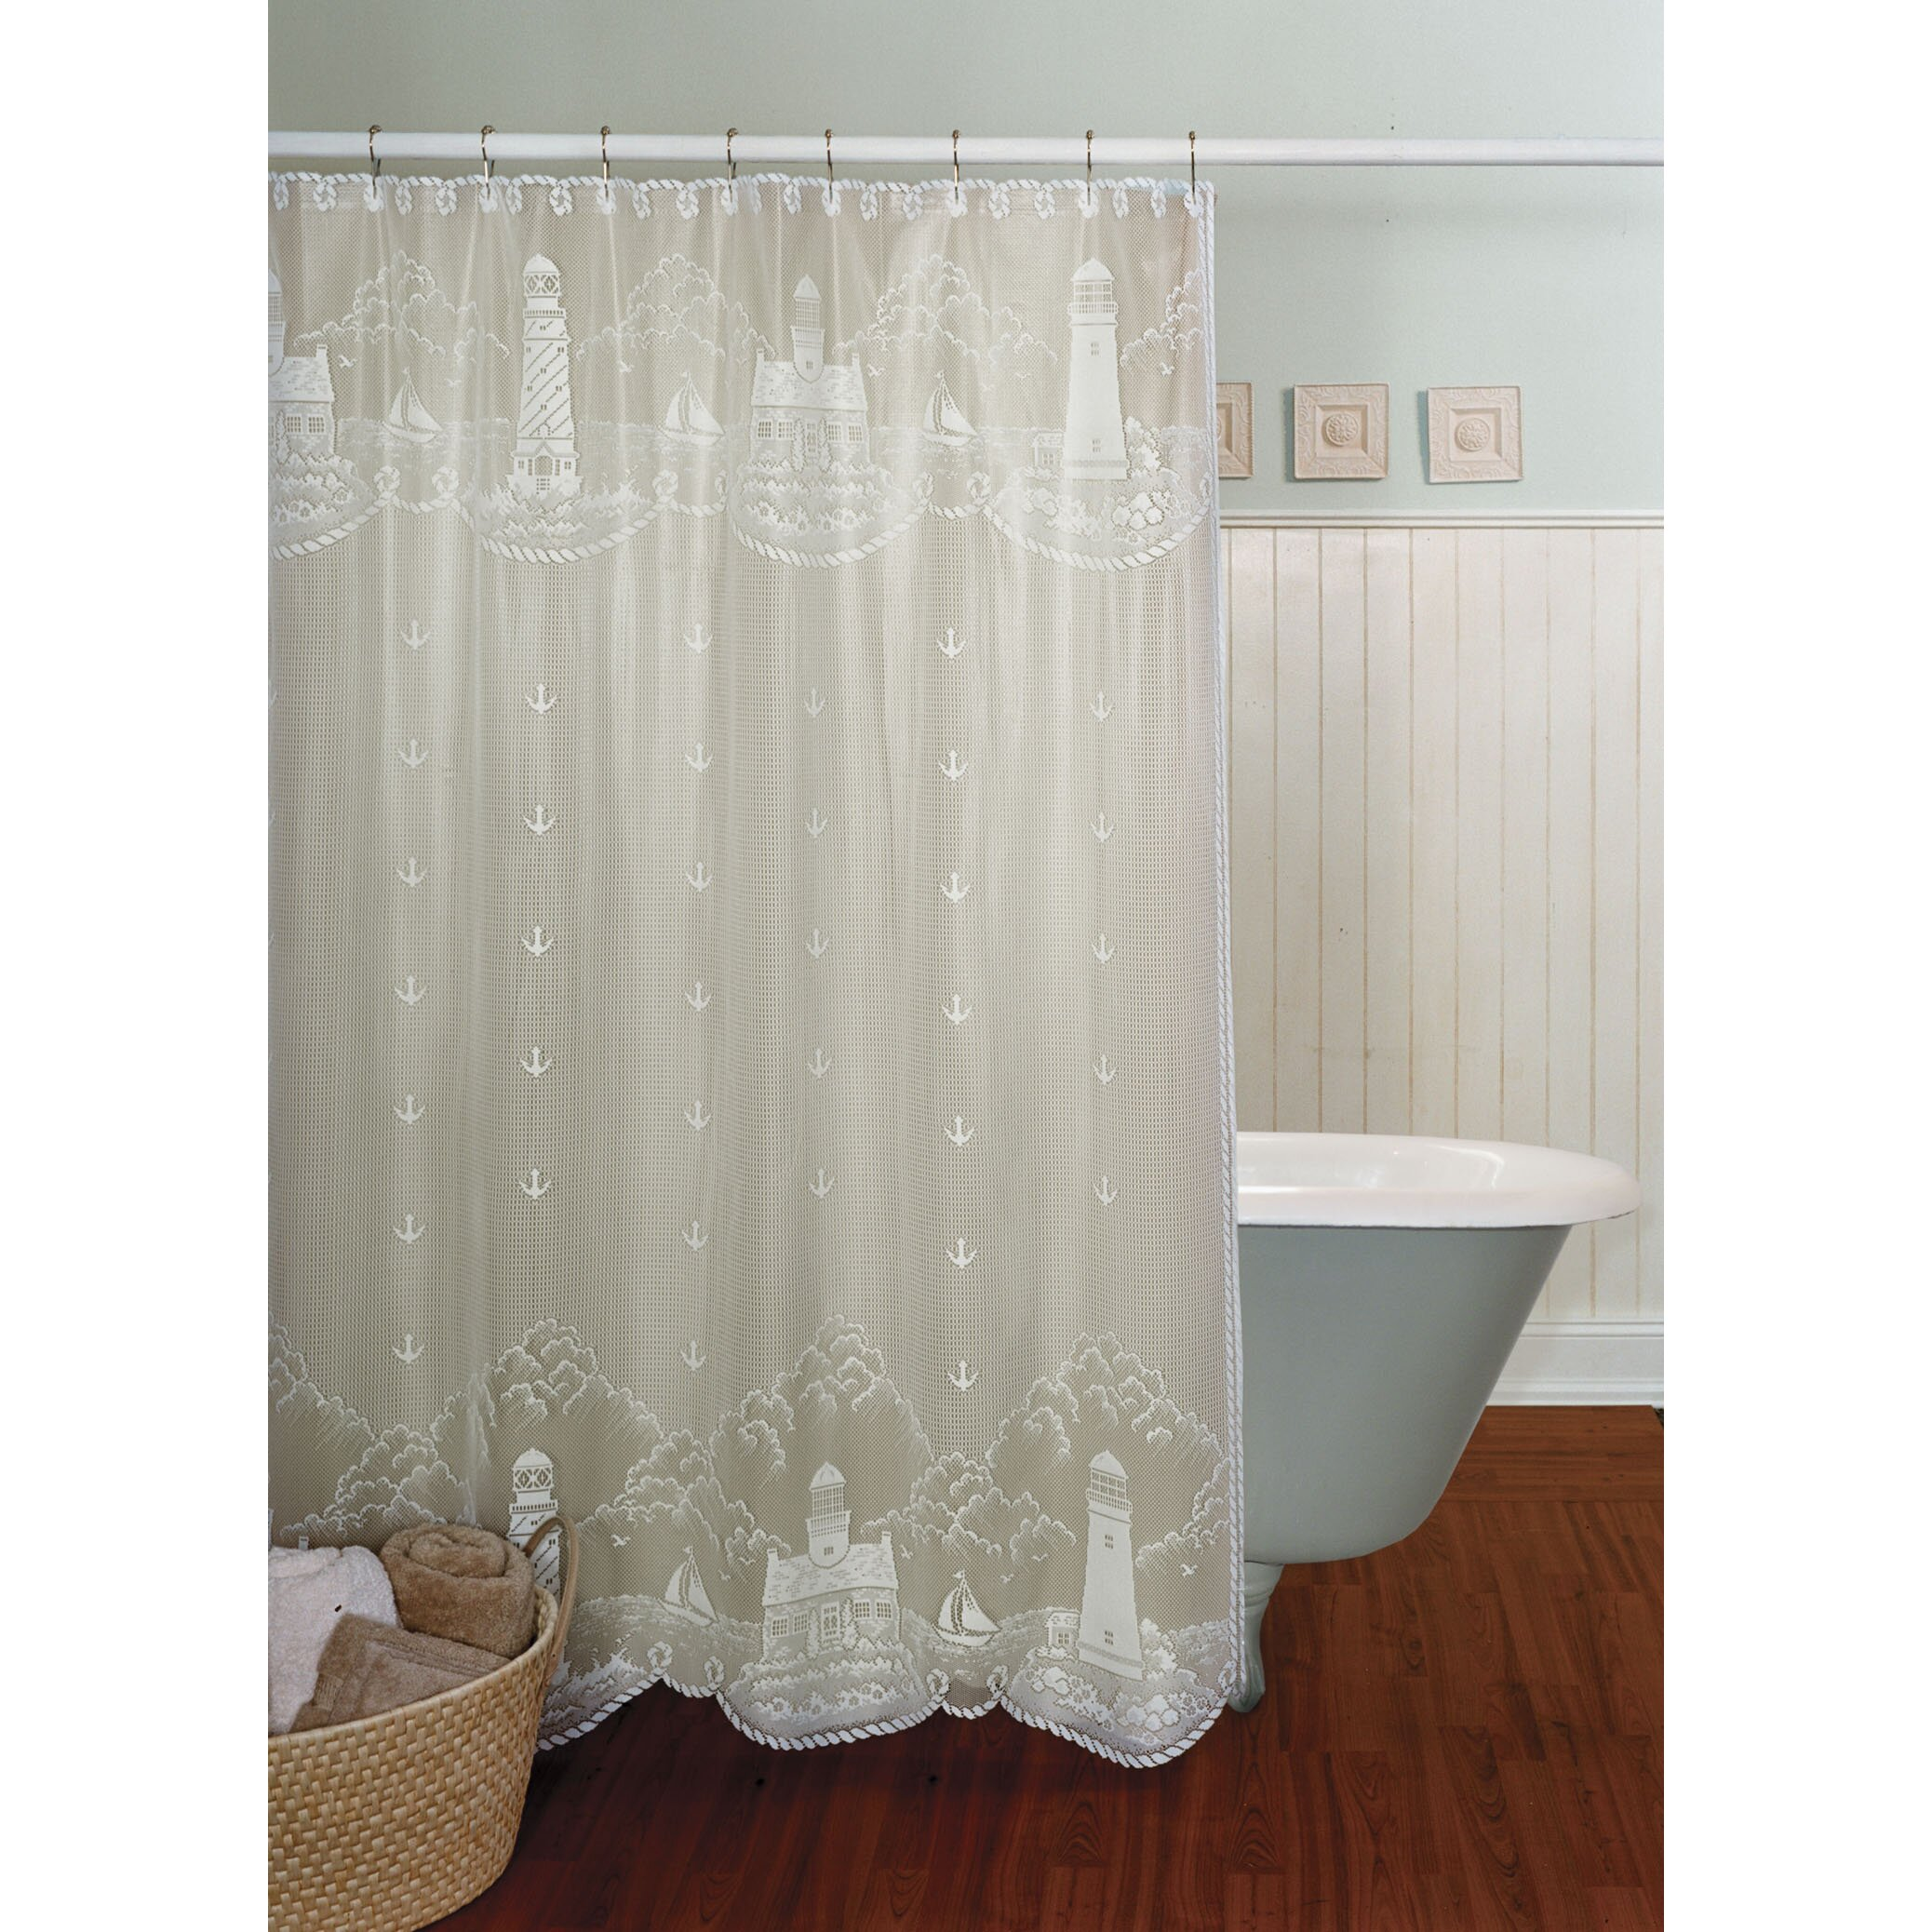 Nautica palmetto bay stripe shower curtain from beddingstyle com - The Bay Shower Curtains Curtain Menzilperde